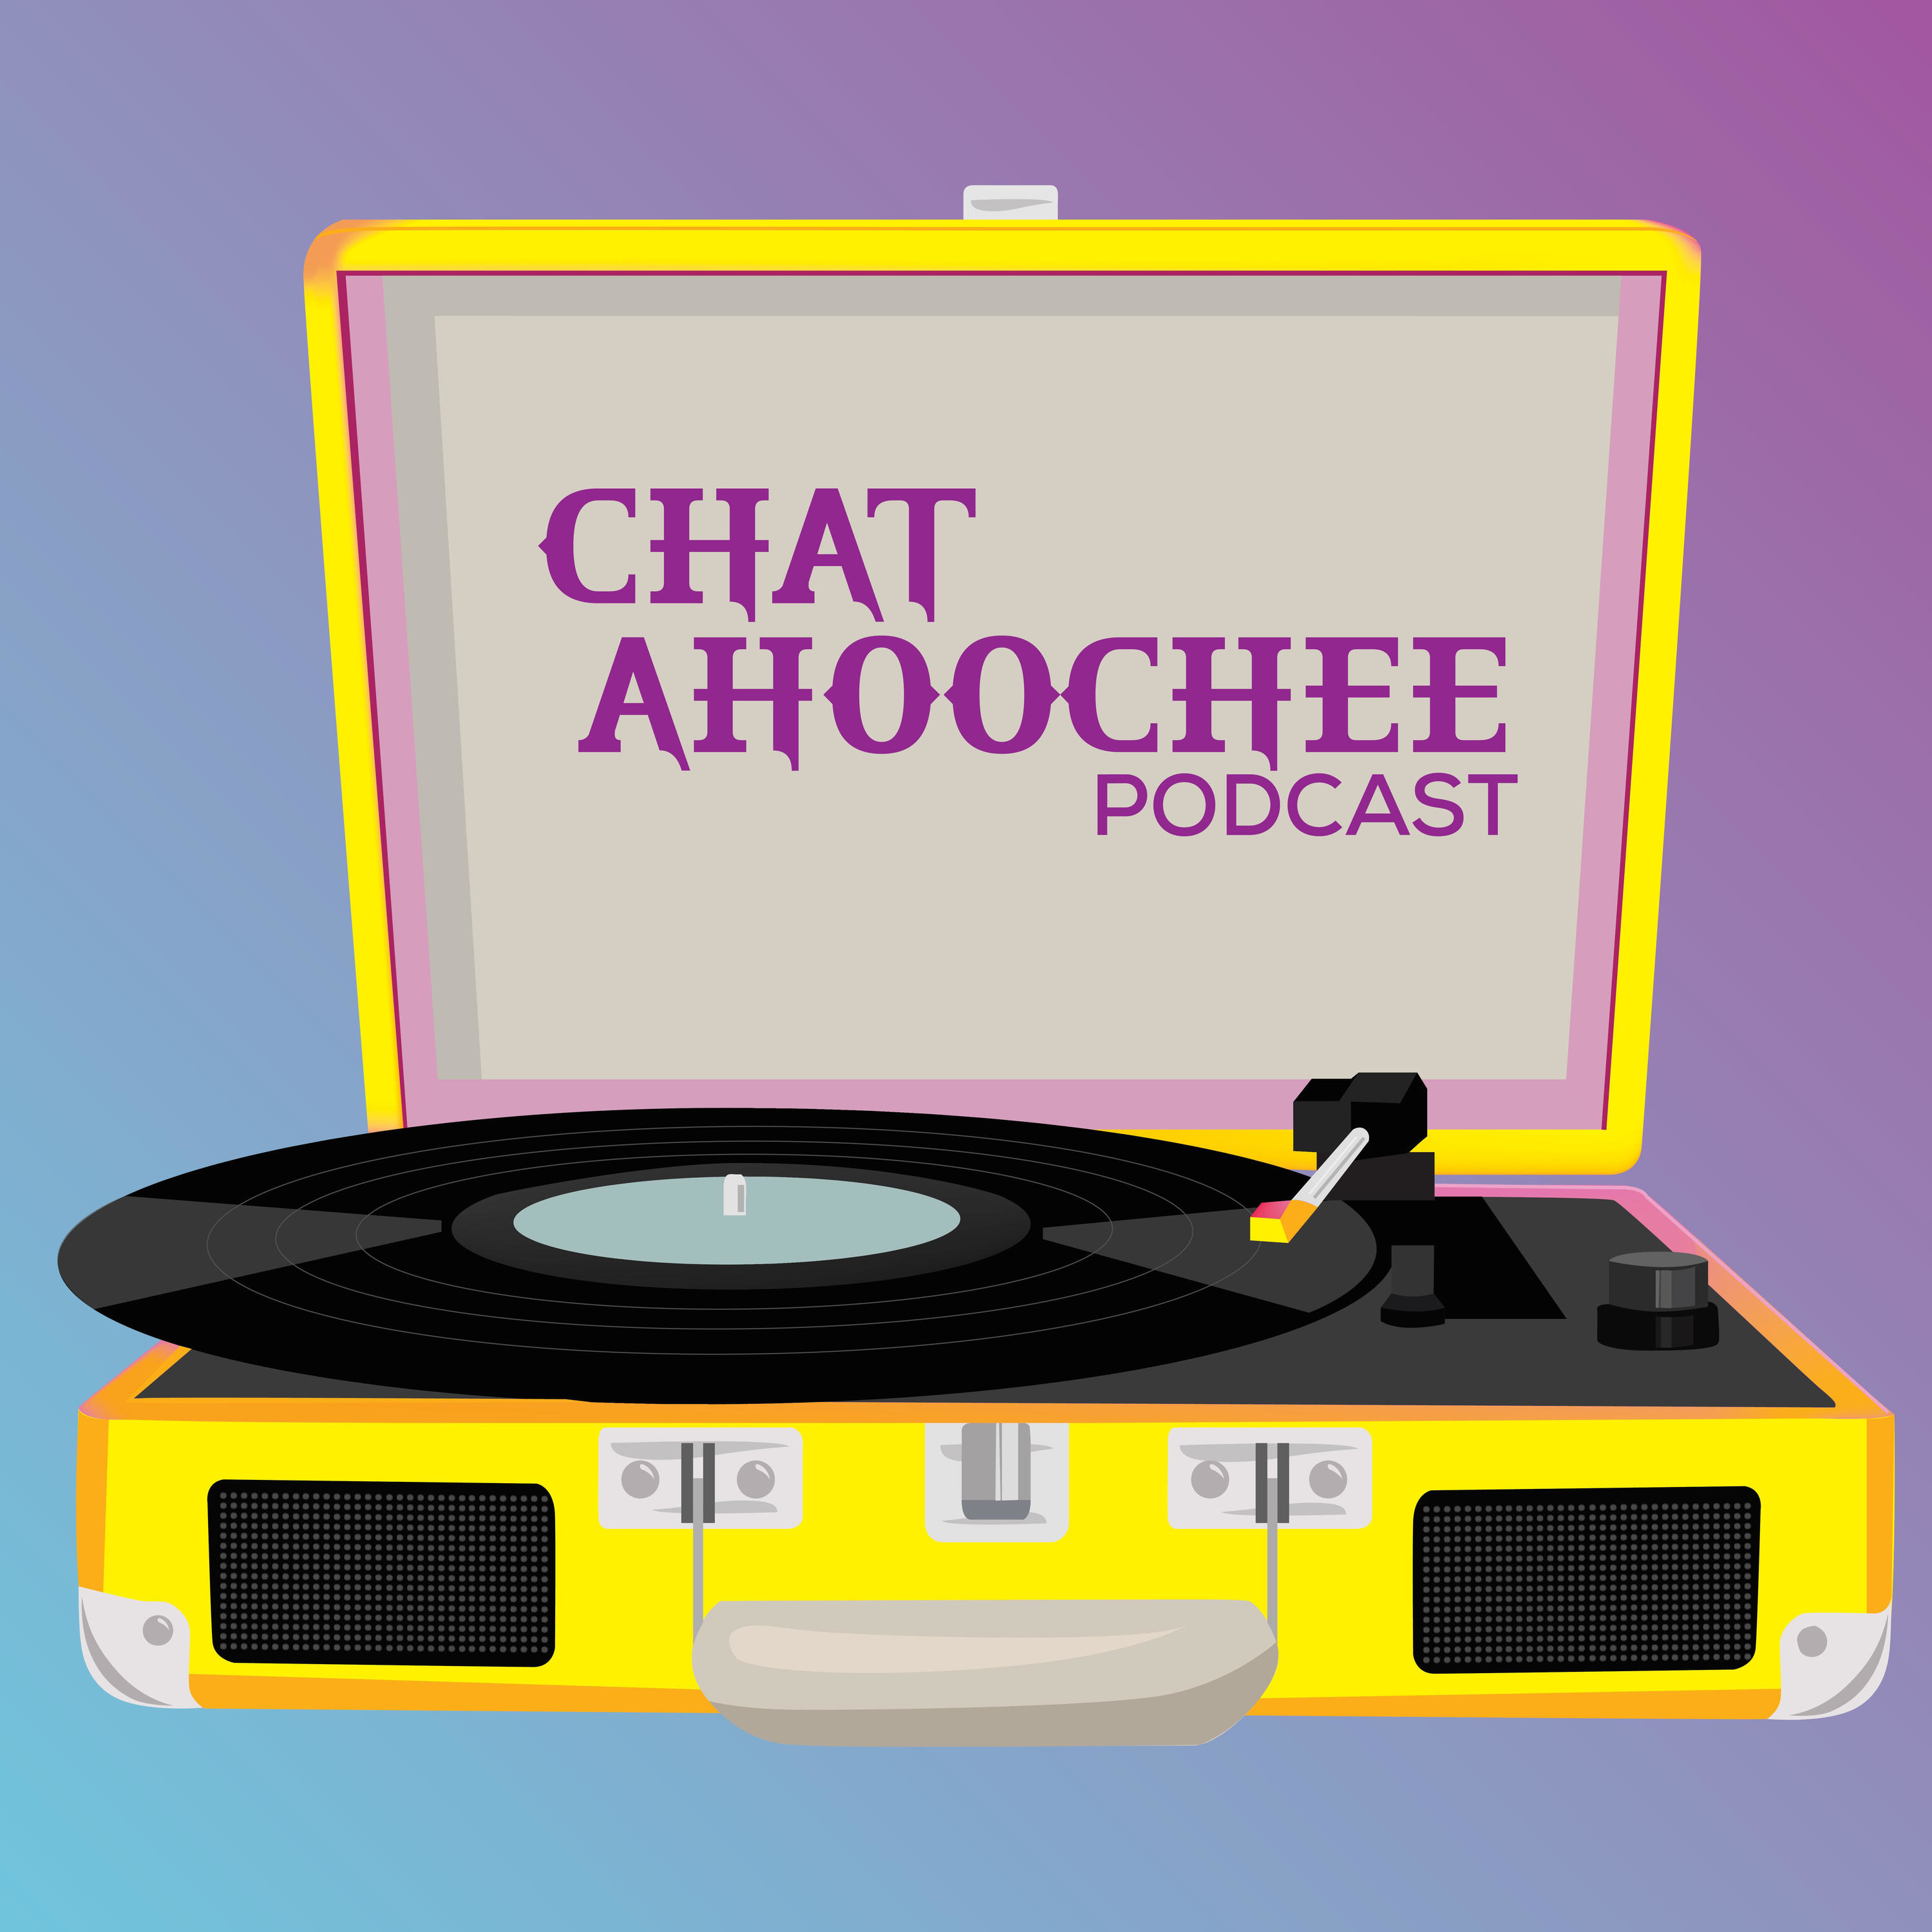 Chatahoochee Podcast